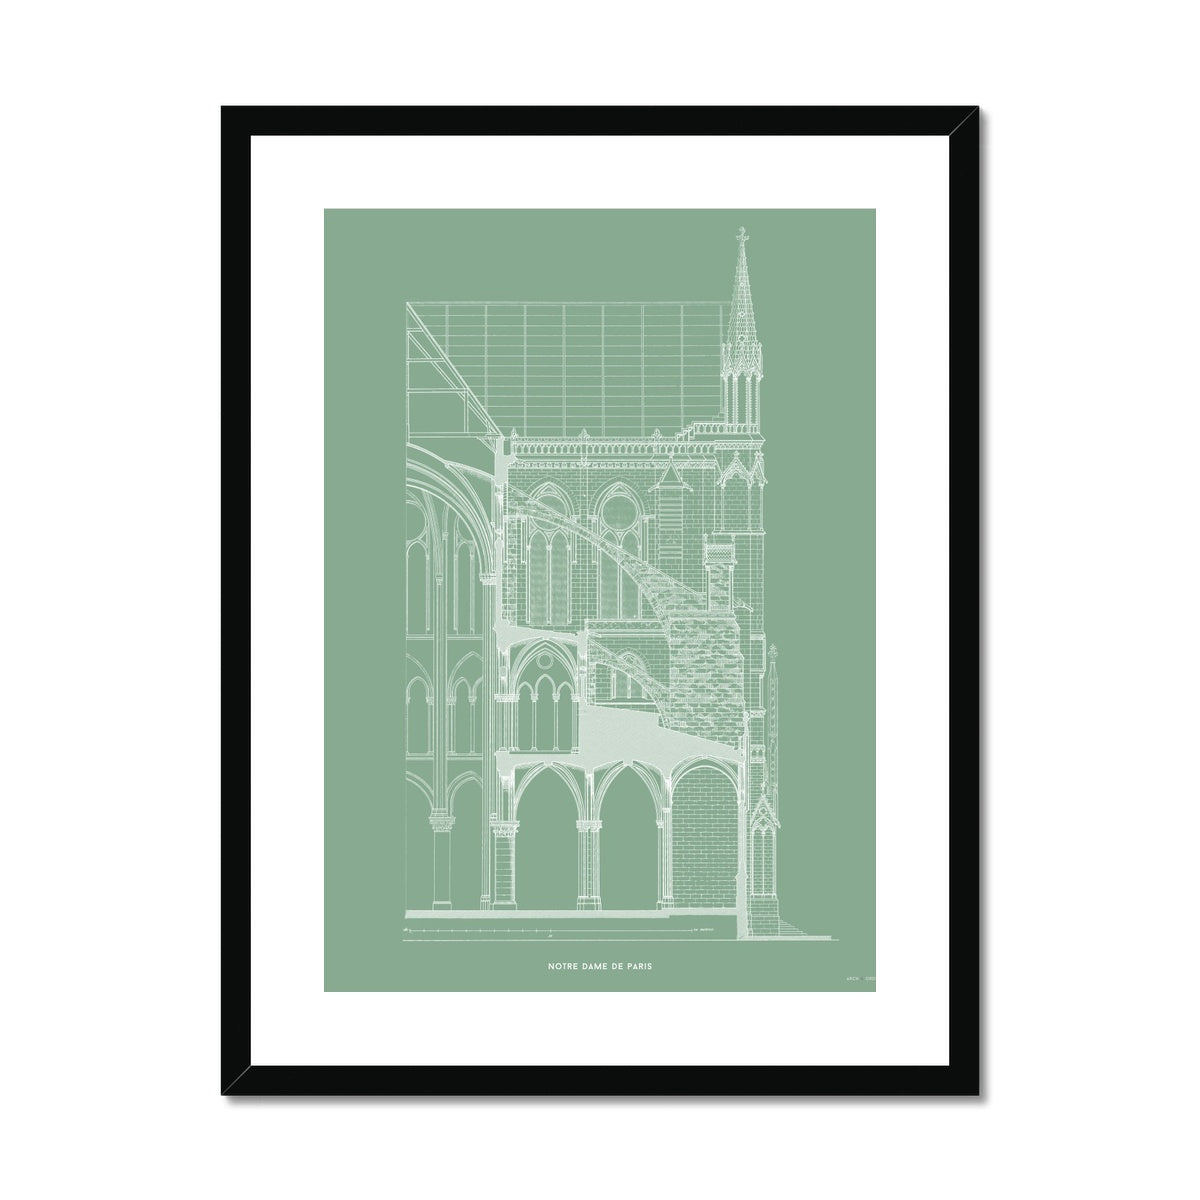 Notre Dame de Paris - Buttress Cross Section - Green -  Framed & Mounted Print